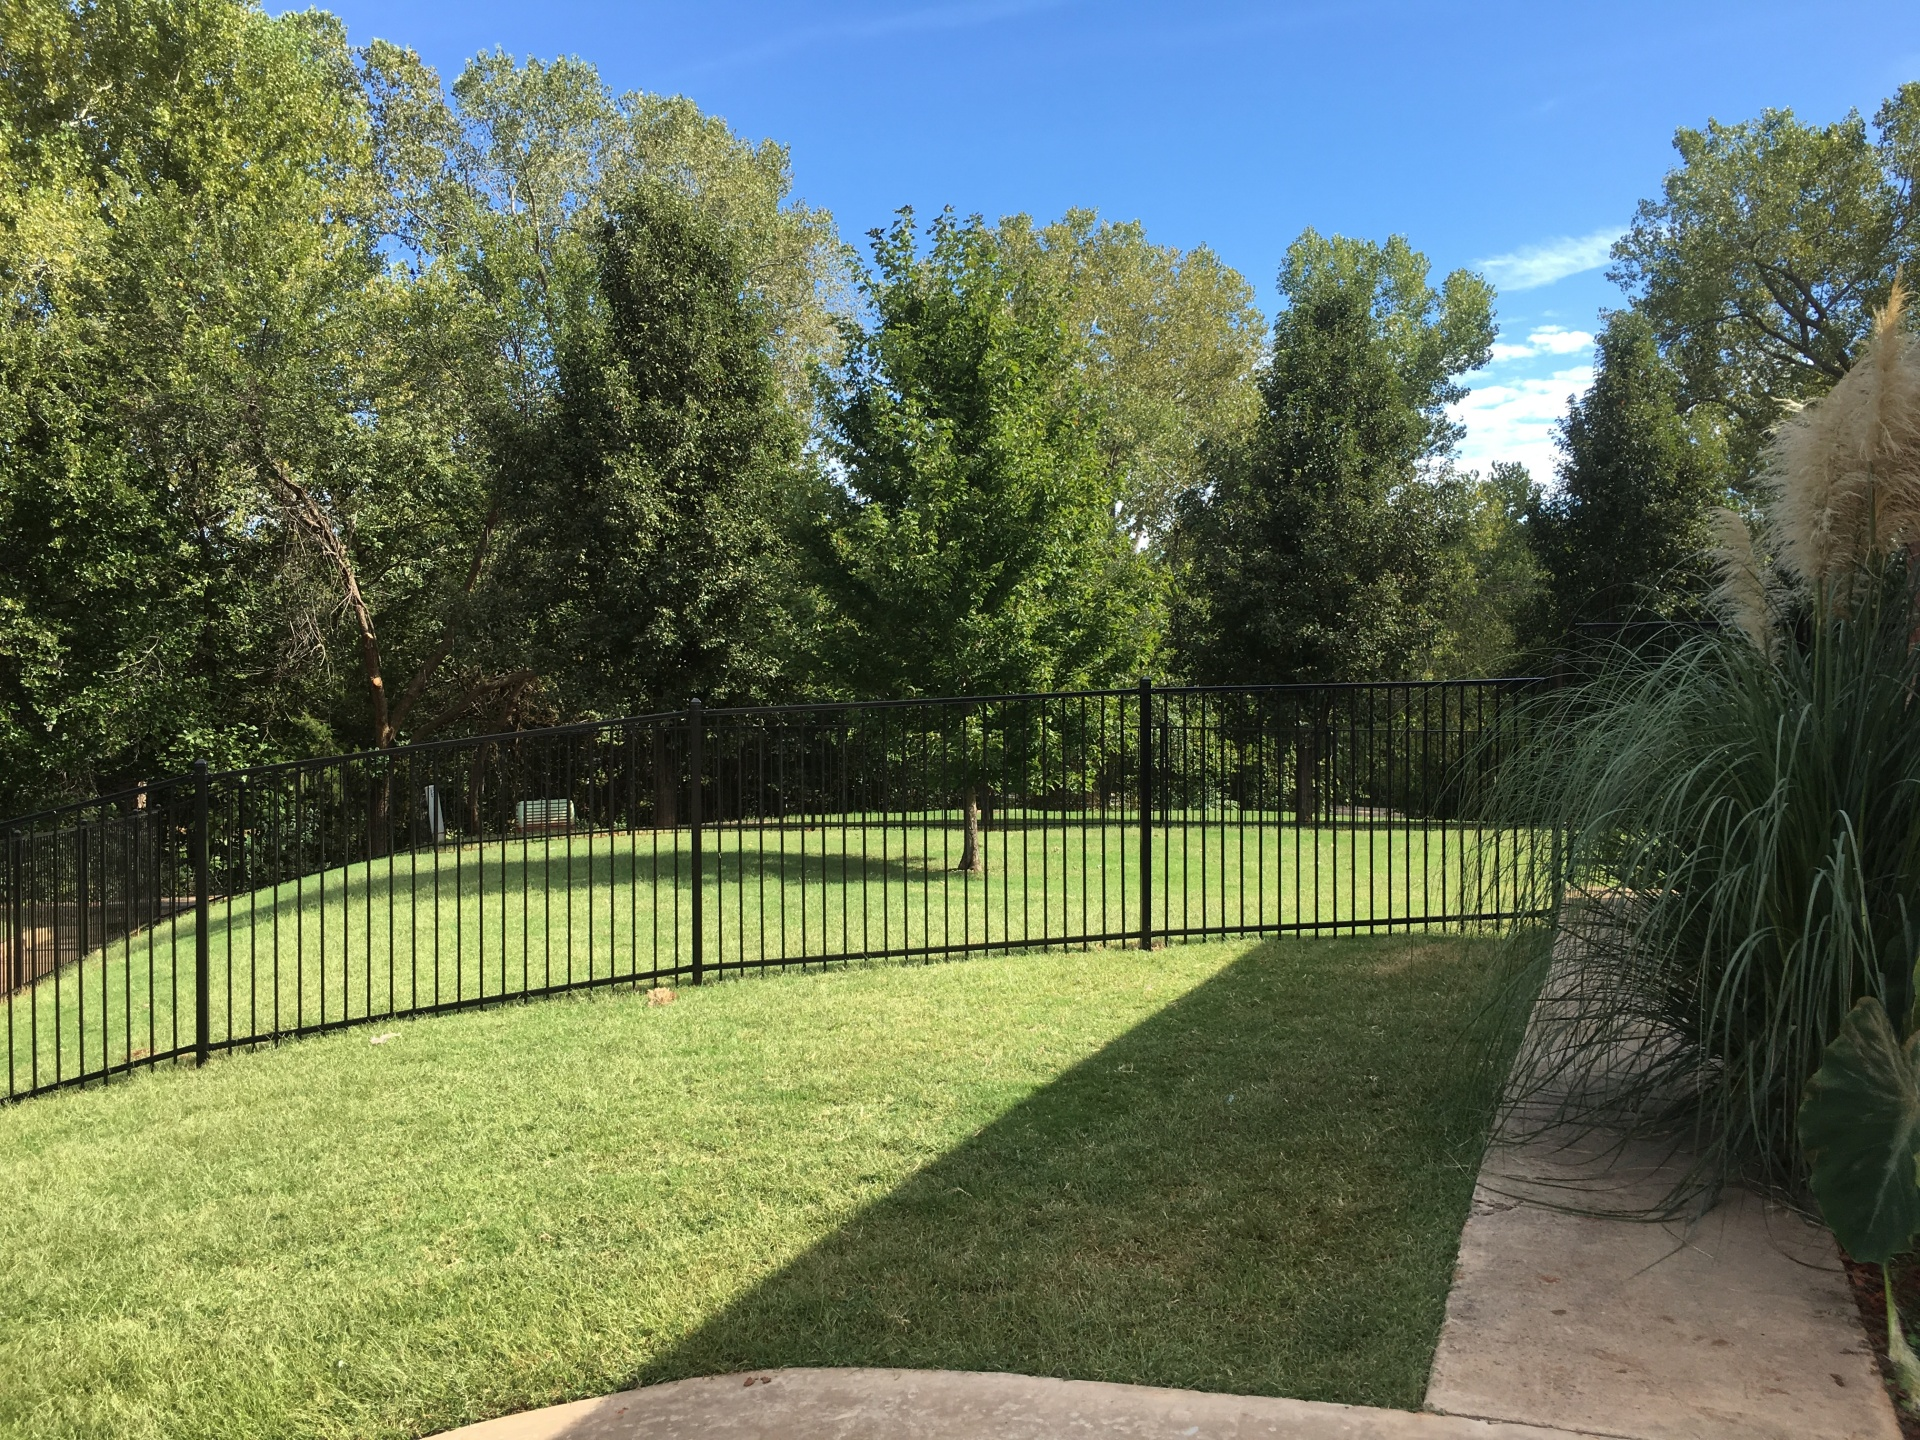 Backyard Iron Fence, Edmond Oklahoma Fence and Gate Company, Security